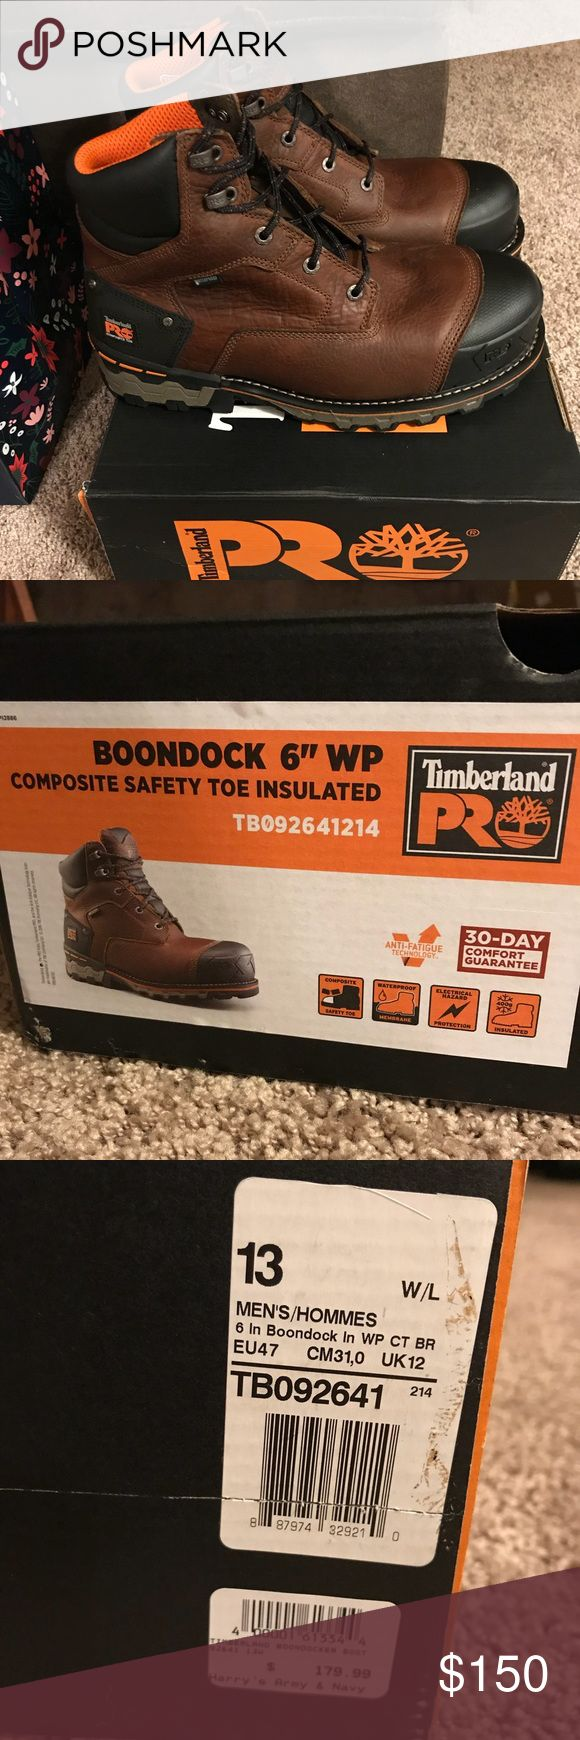 """Men's Timberland Boondock WP composite safety toe New in box. Men's size 13 Timberland Boondock 6"""" WP composite safety toe insulated Boots. Purchased from Harry's Army Navy for $180 to be a Christmas gift now they need a new home since they cannot be returned. You are able to return them for a store credit if you wanted to exchange for something else there but I have no need for anything else there. Message with interest-serious inquiries only please. Thank you. Posted on multiple sites…"""